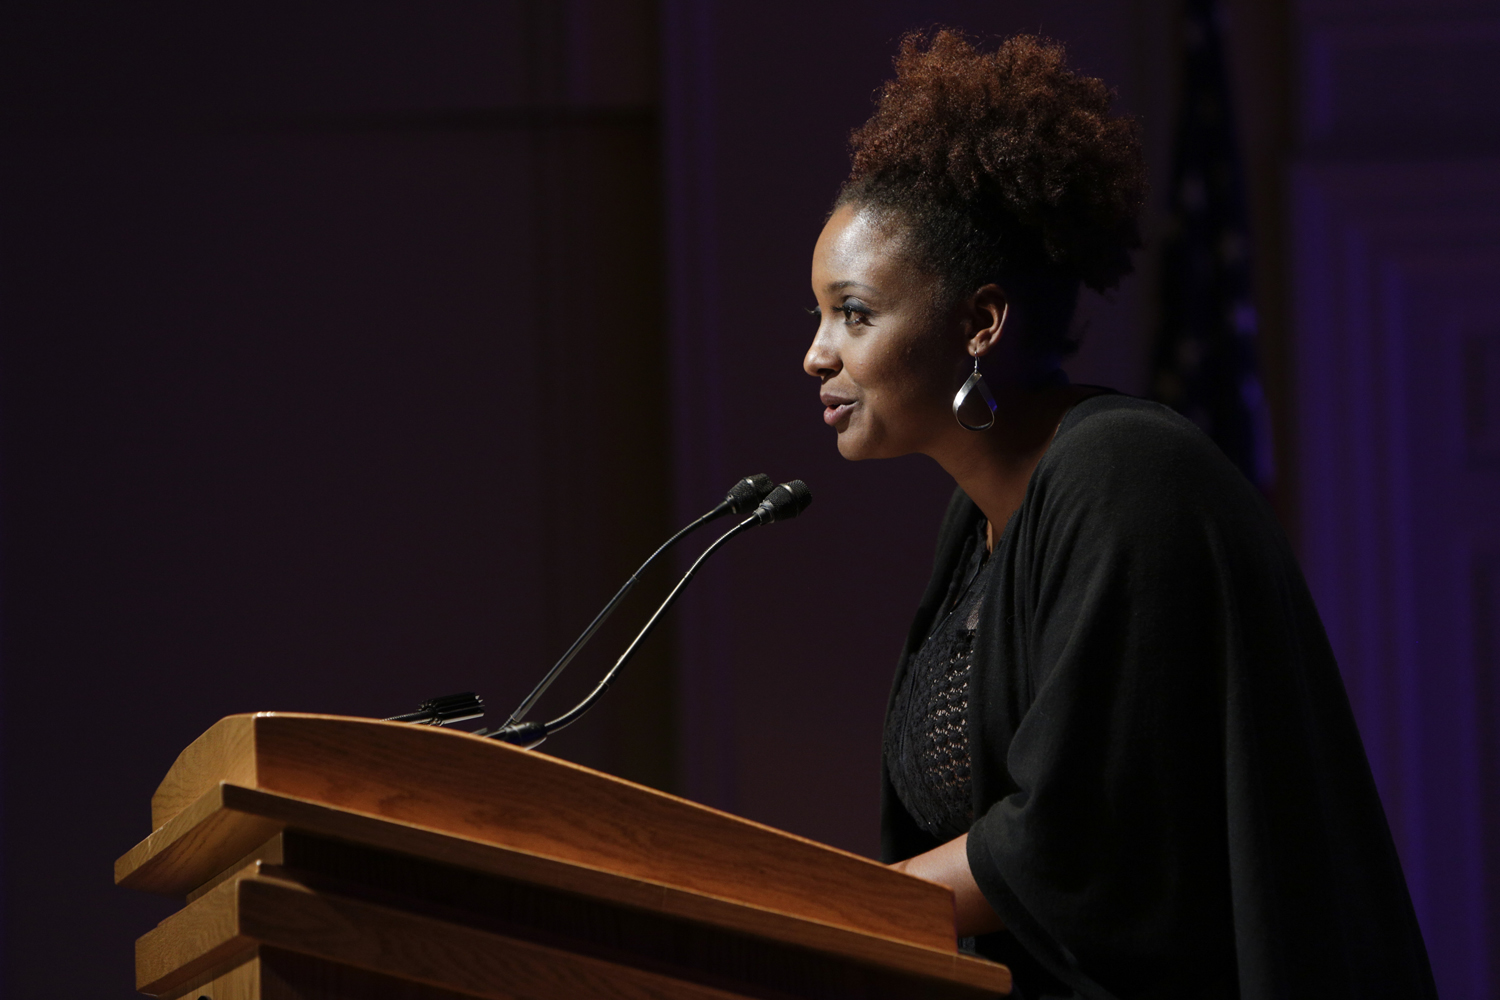 Poet Laureate Tracy K. Smith delivers the opening reading of her 2017-18 tenure.